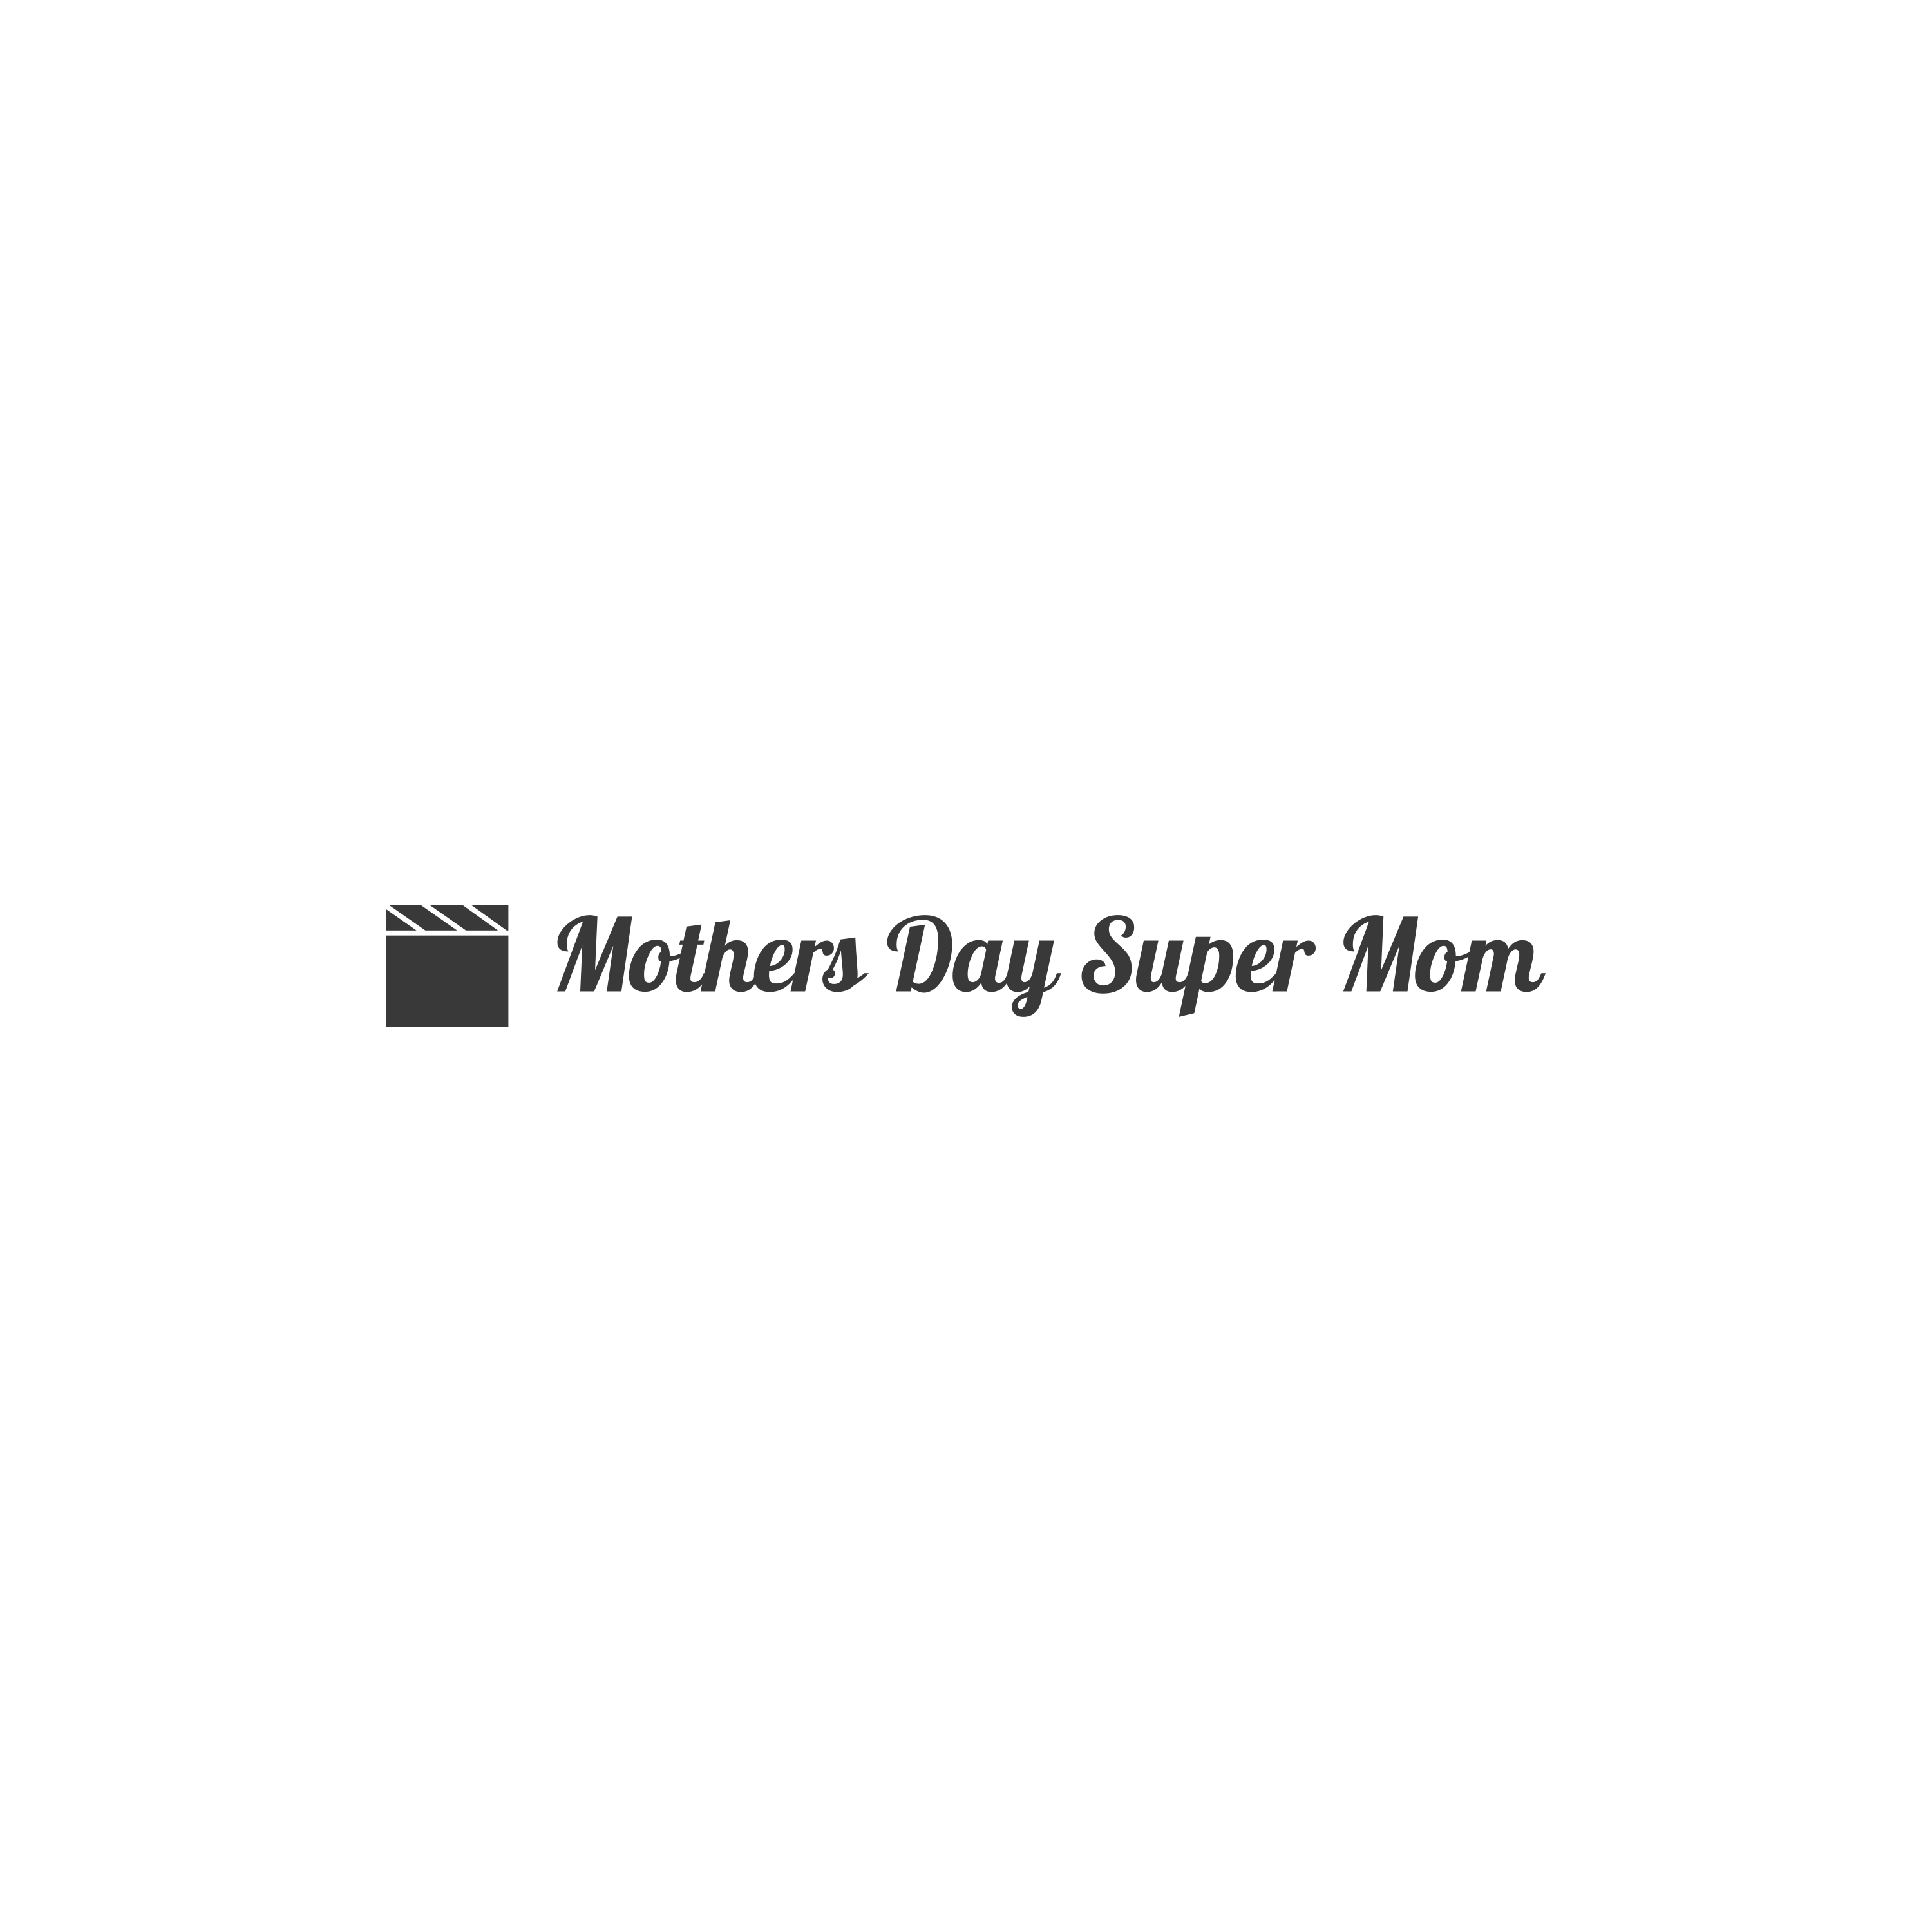 Mothers Day Super Mom